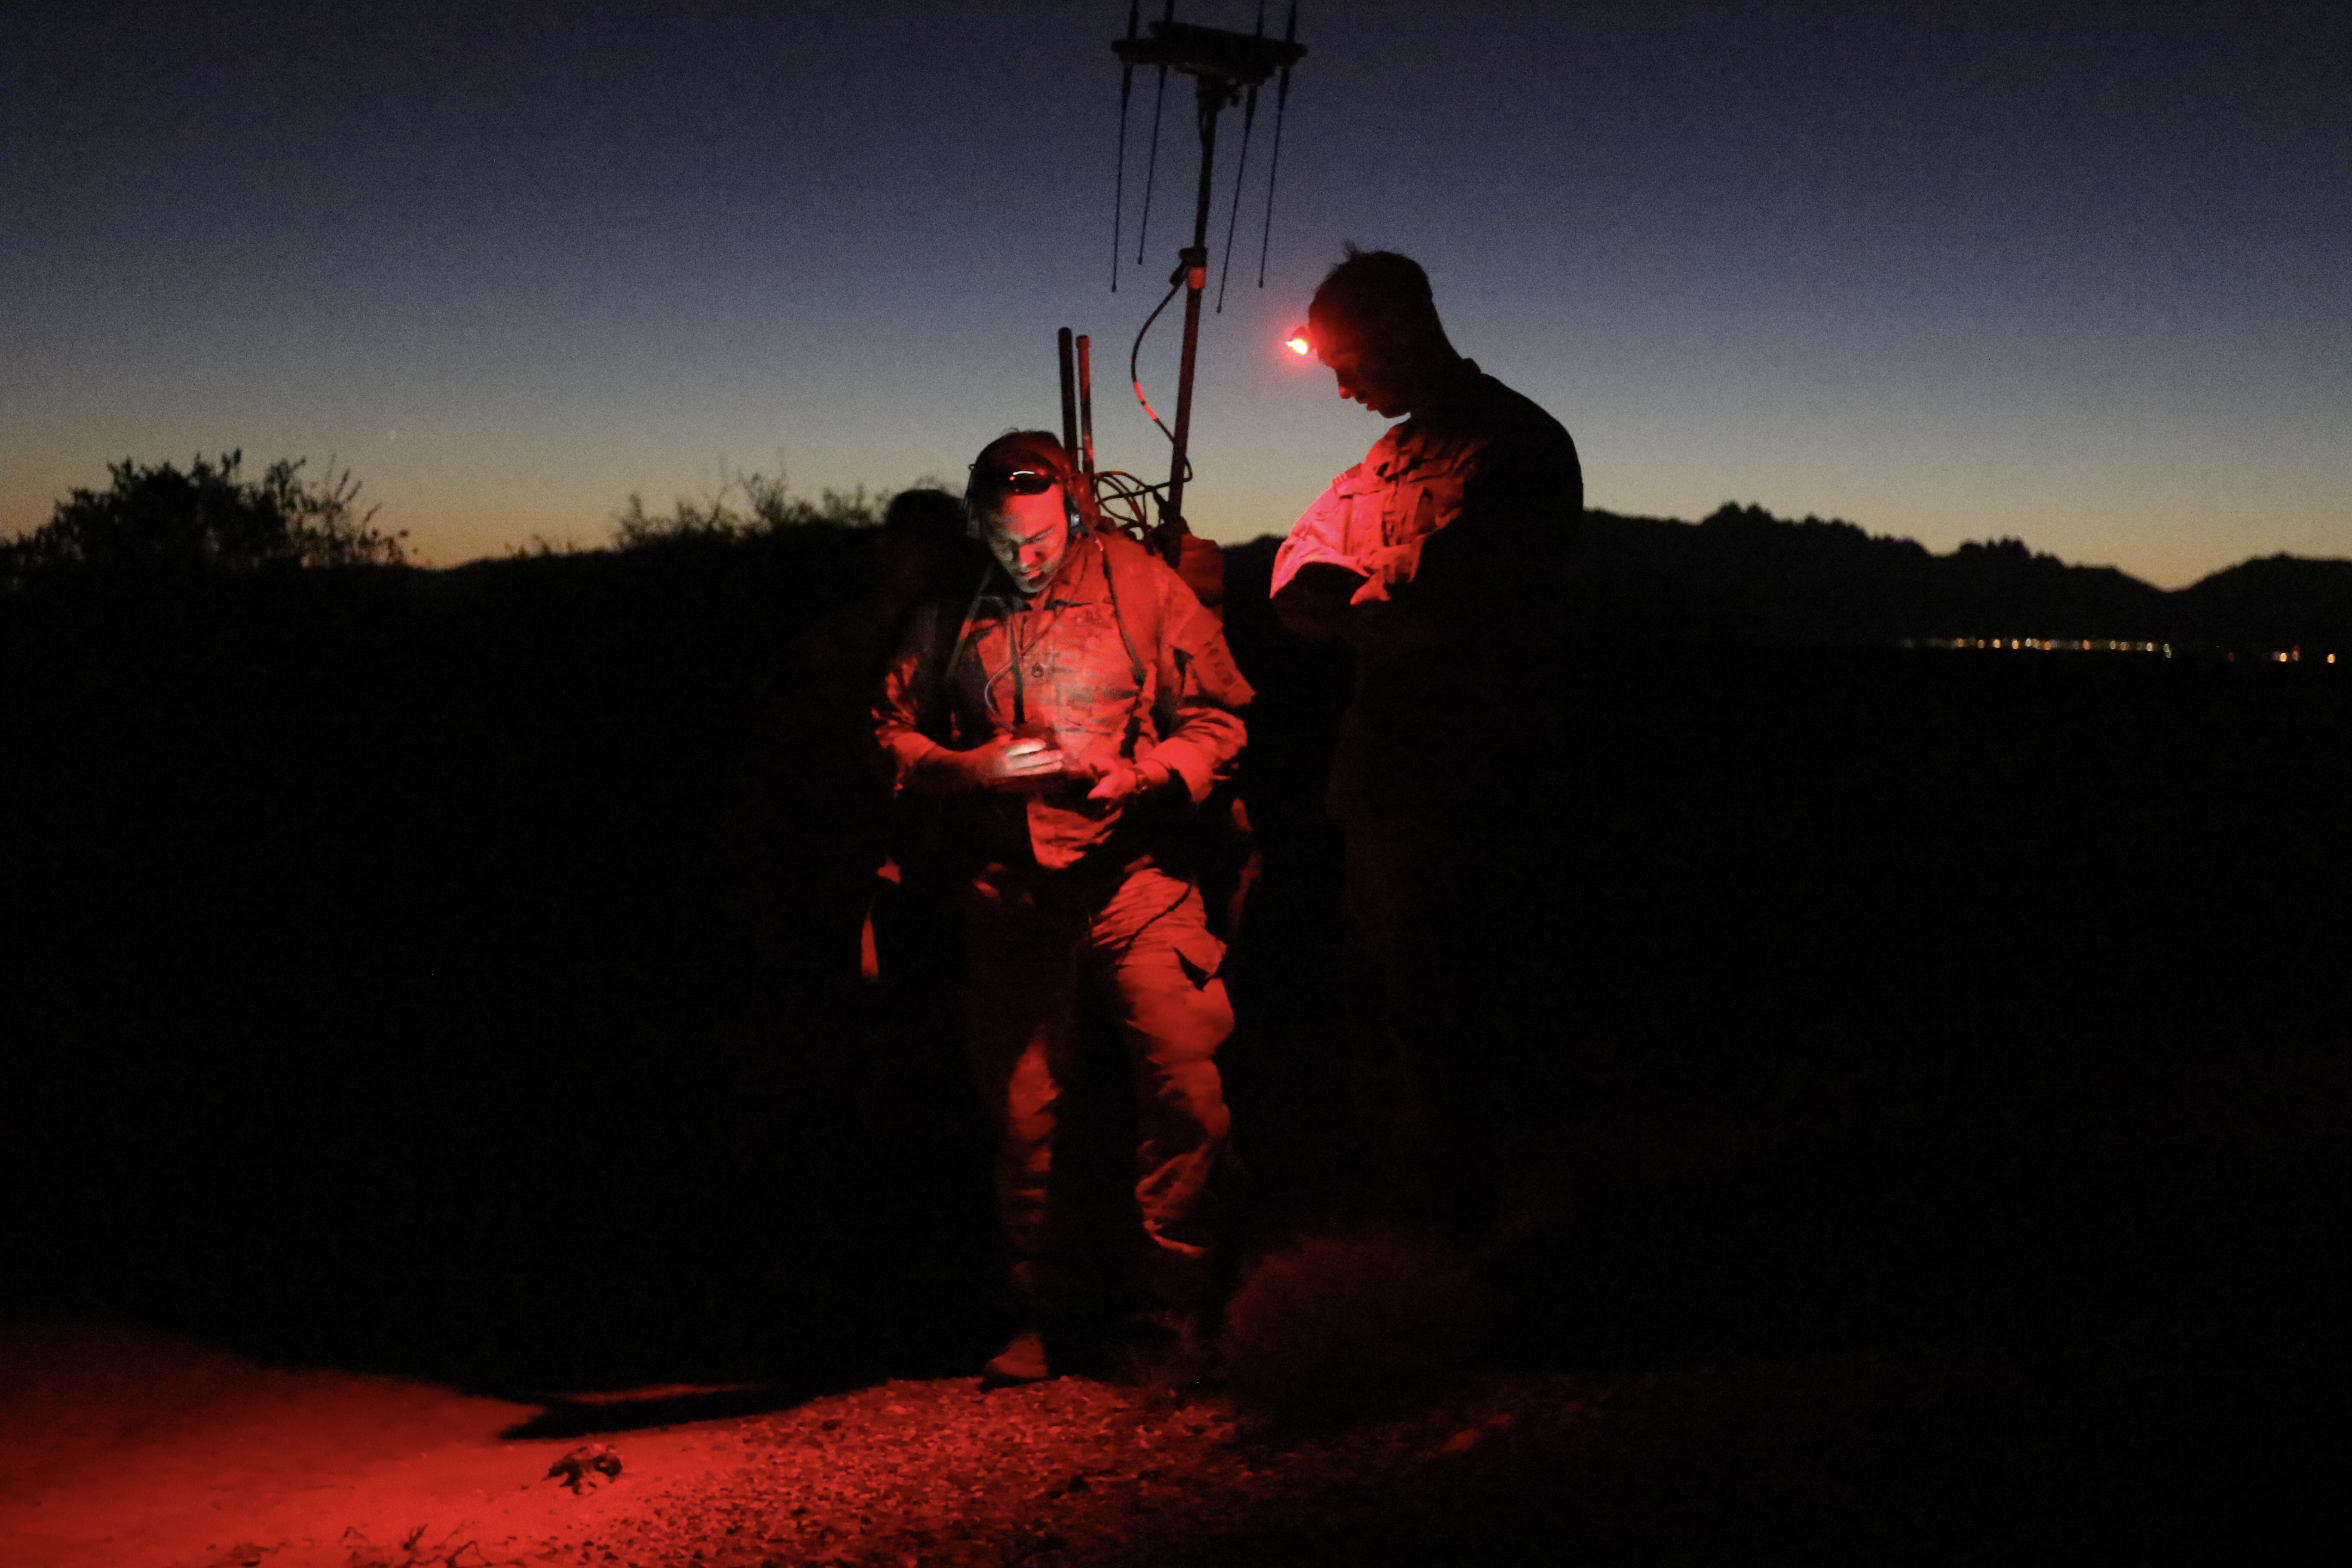 IN THE READ: Recent directives have made clear the importance of U.S. military regaining advantage in the electromagnetic spectrum. (Sgt. Cody Parsons/Army)